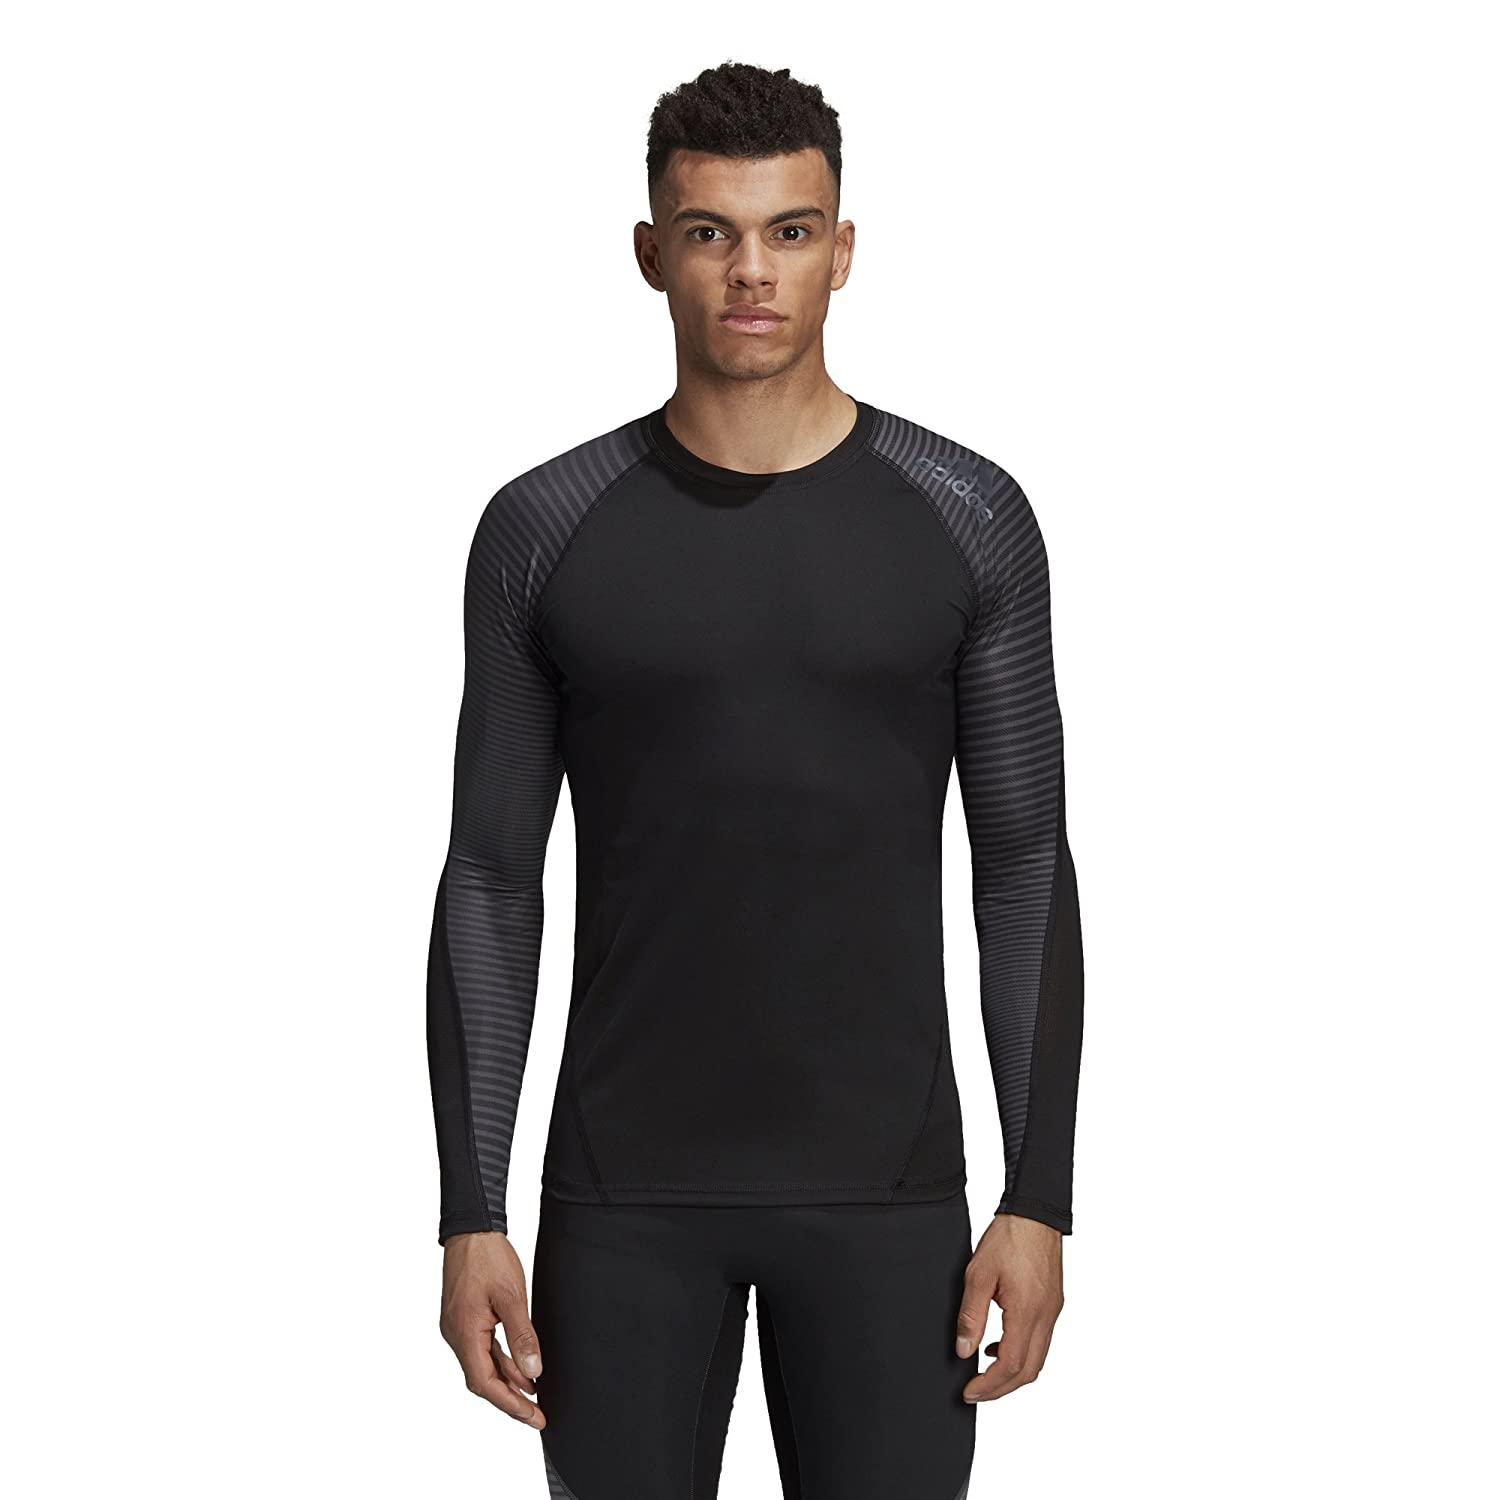 Adidas Men's Alphaskin Sport Climawarm Long Sleeve Tee